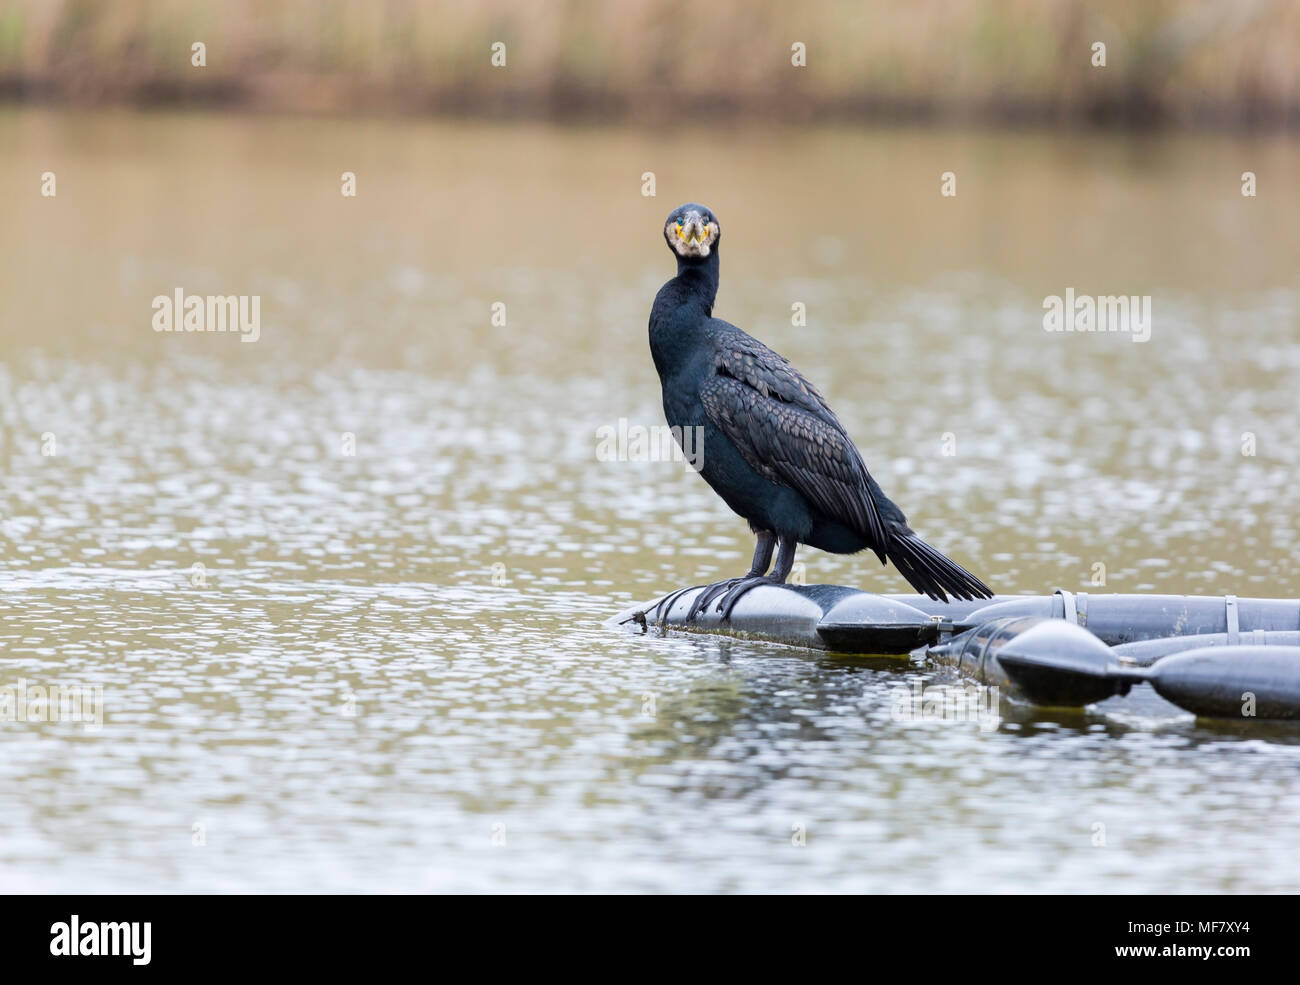 Common Shag perched on a pontoon in a Cornish Lake - Stock Image